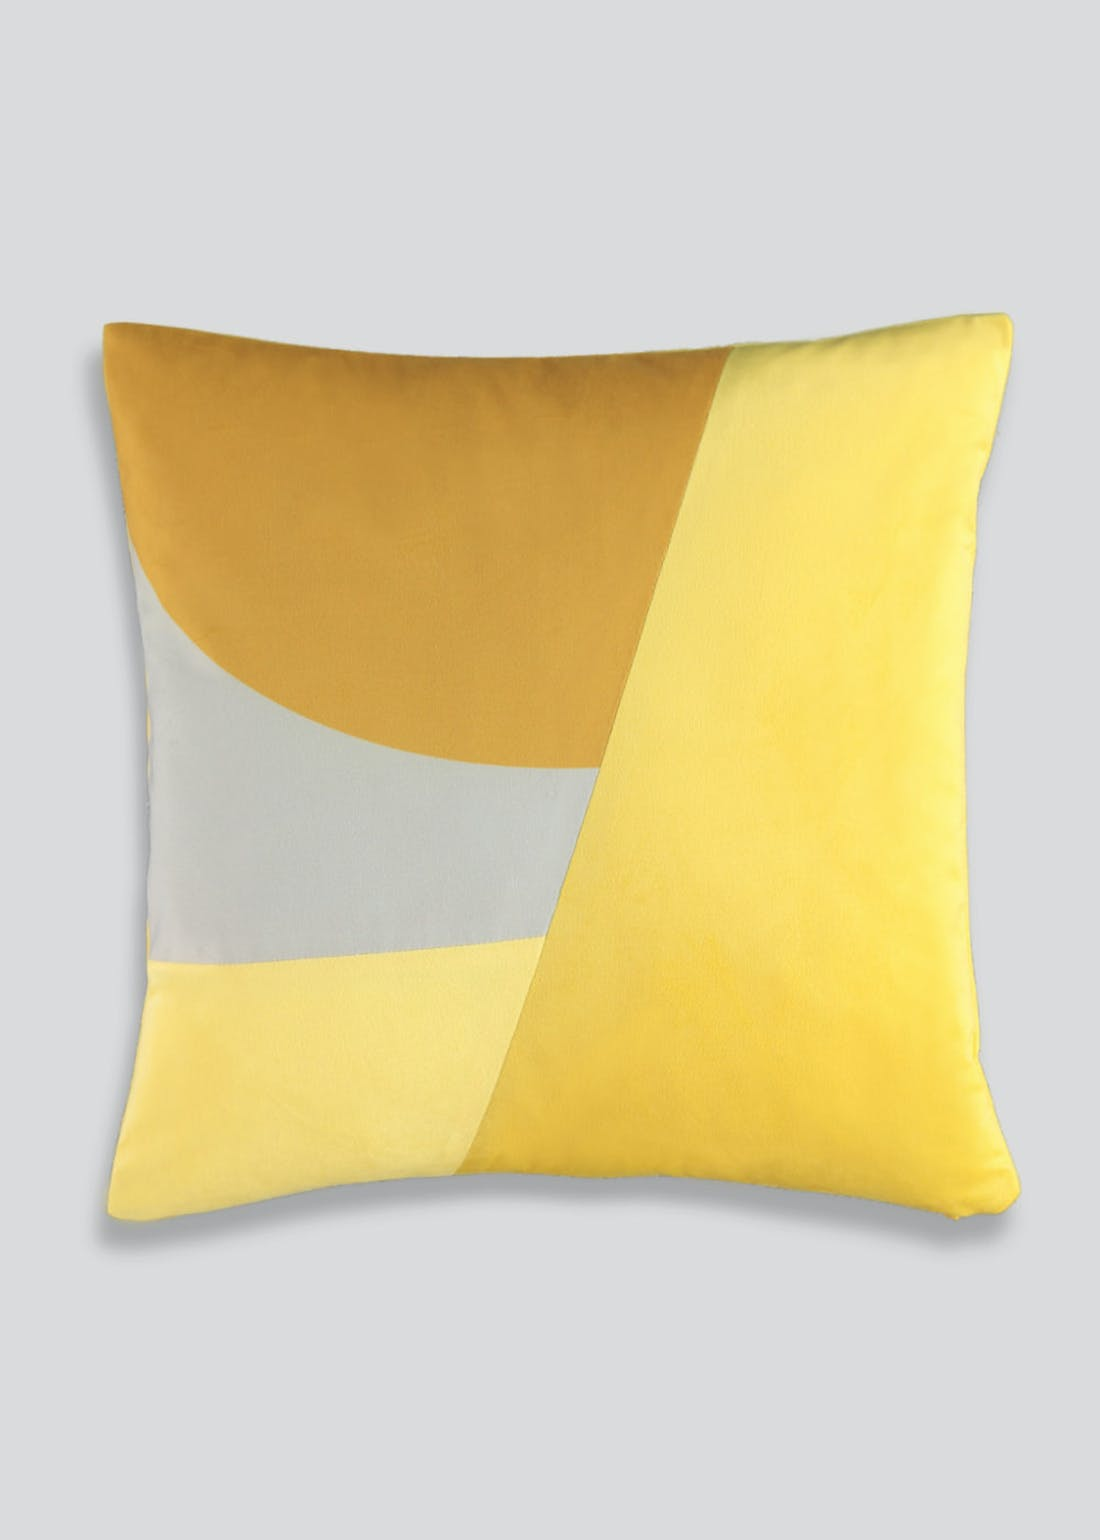 Colour Block Cushion (46cm x 46cm)